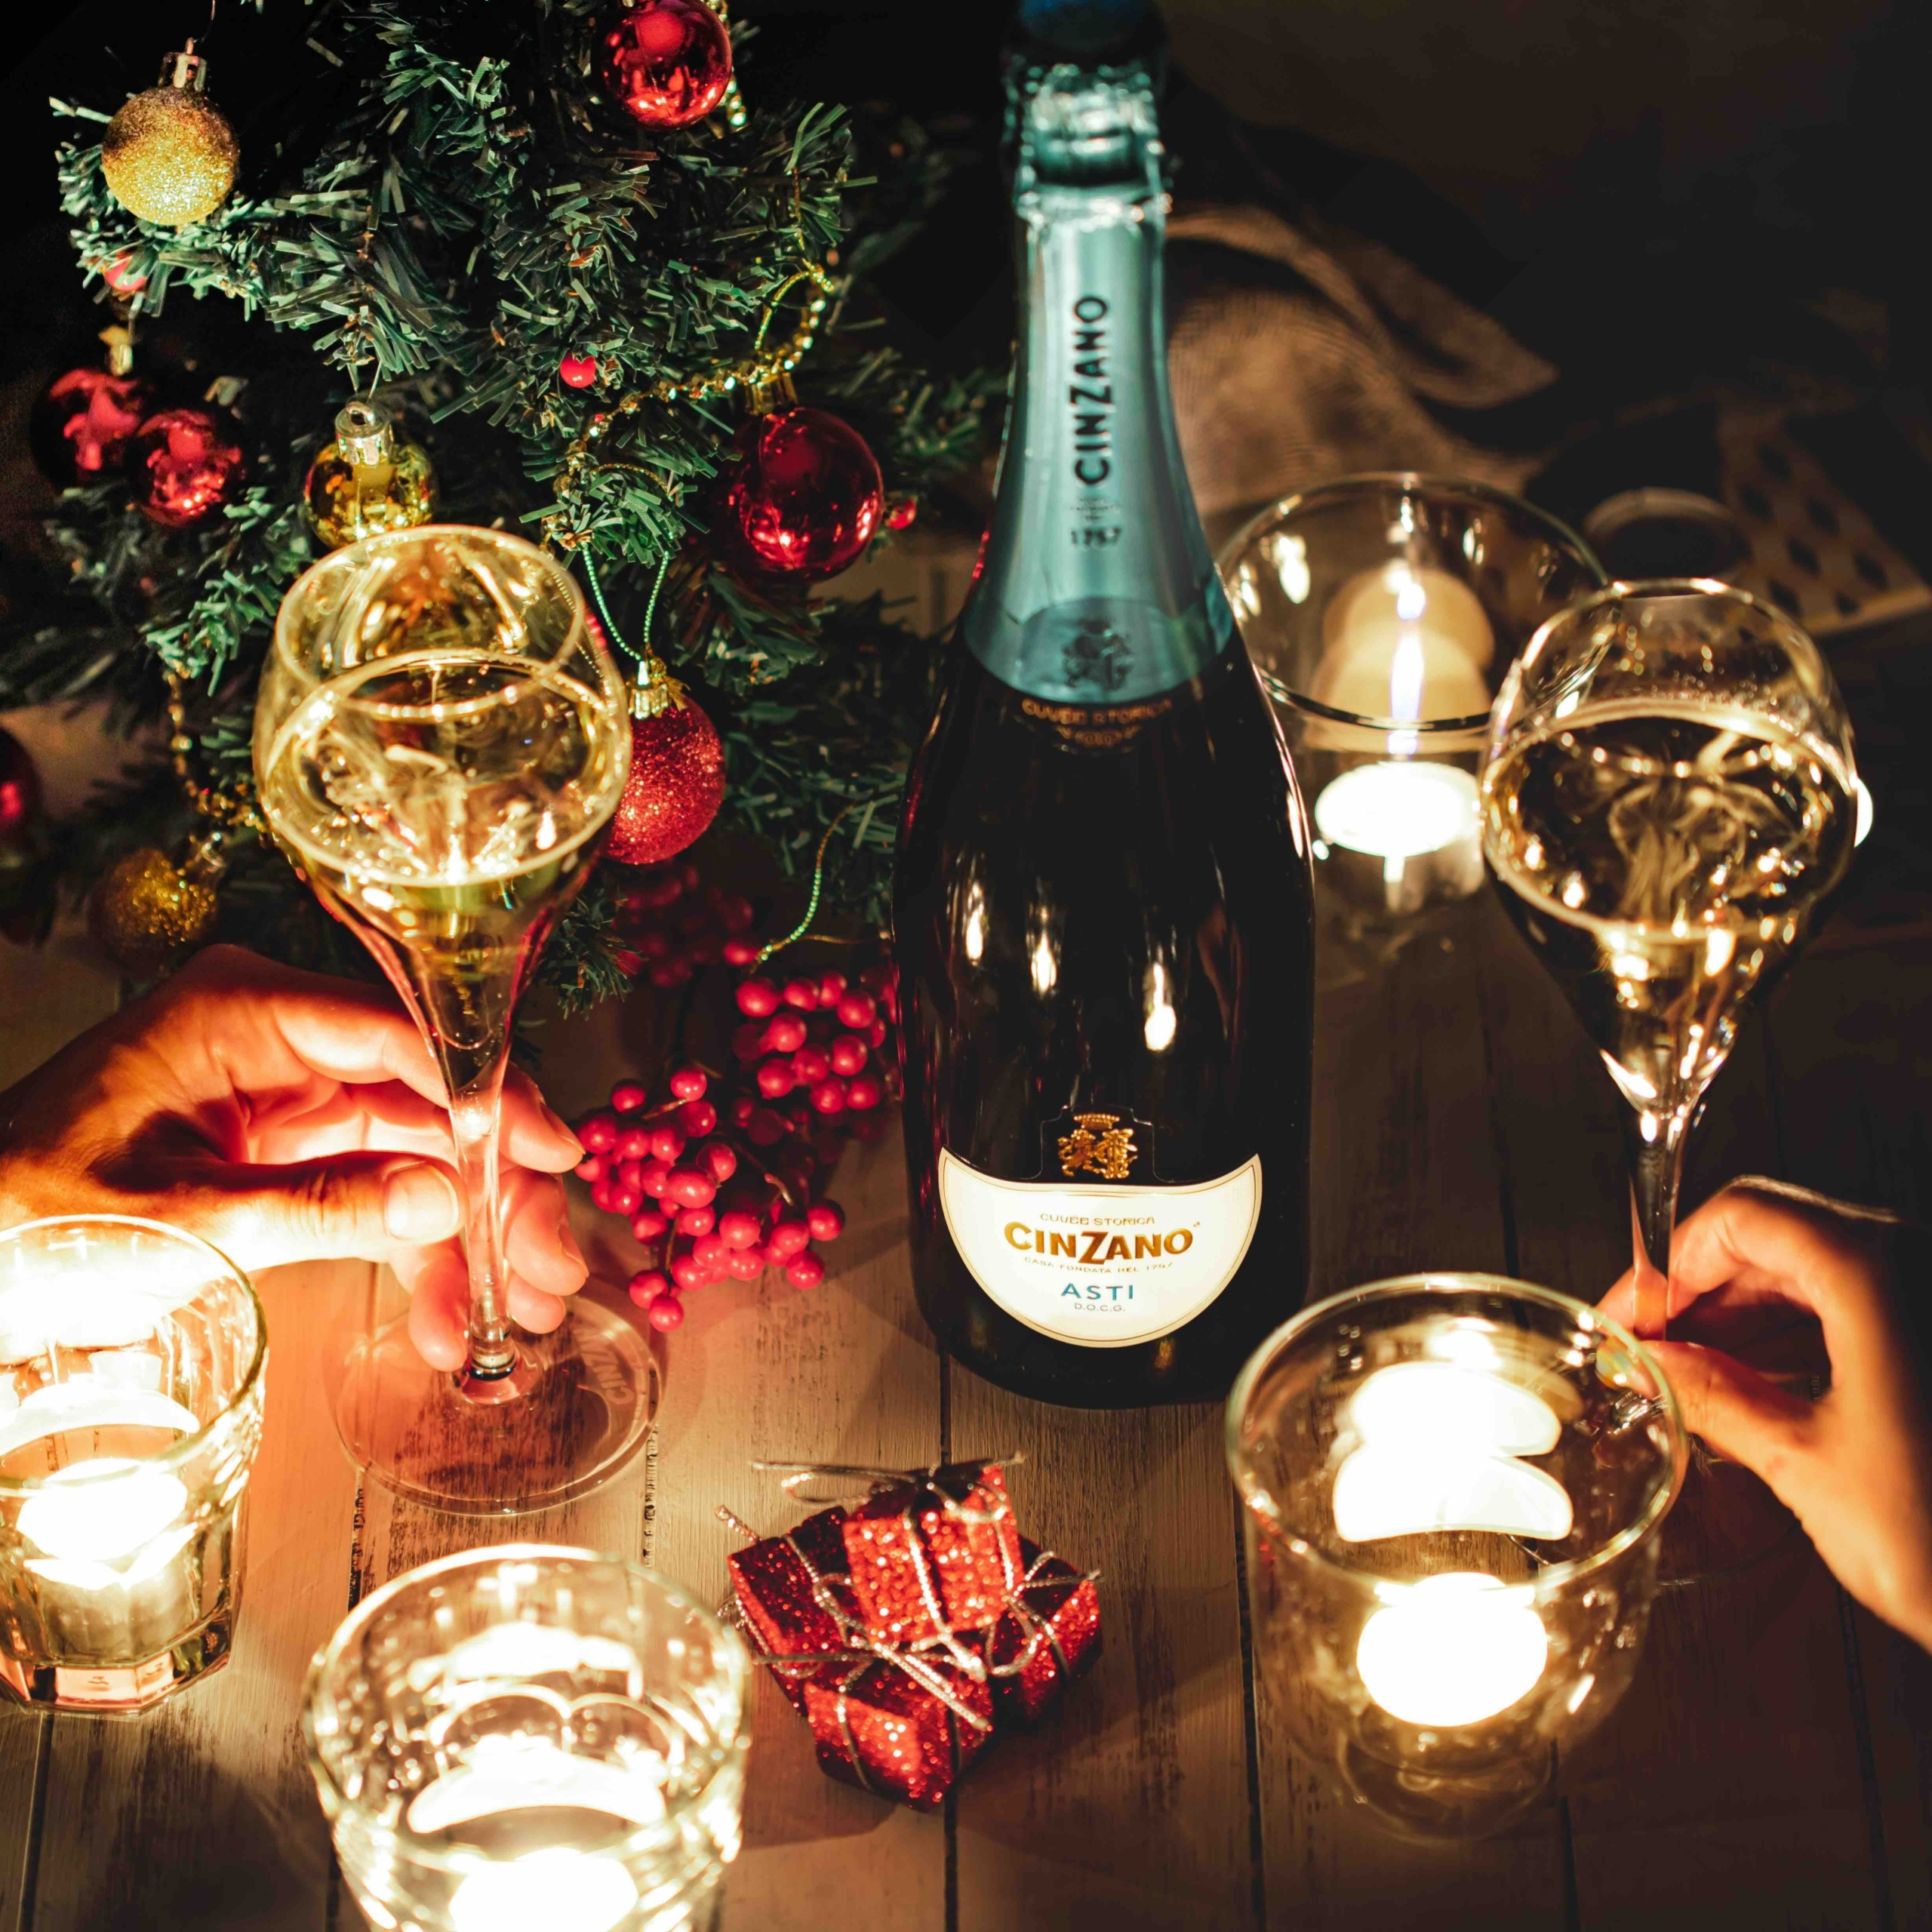 Cinzano Asti Spumante NYE Virtual Bubbly Party